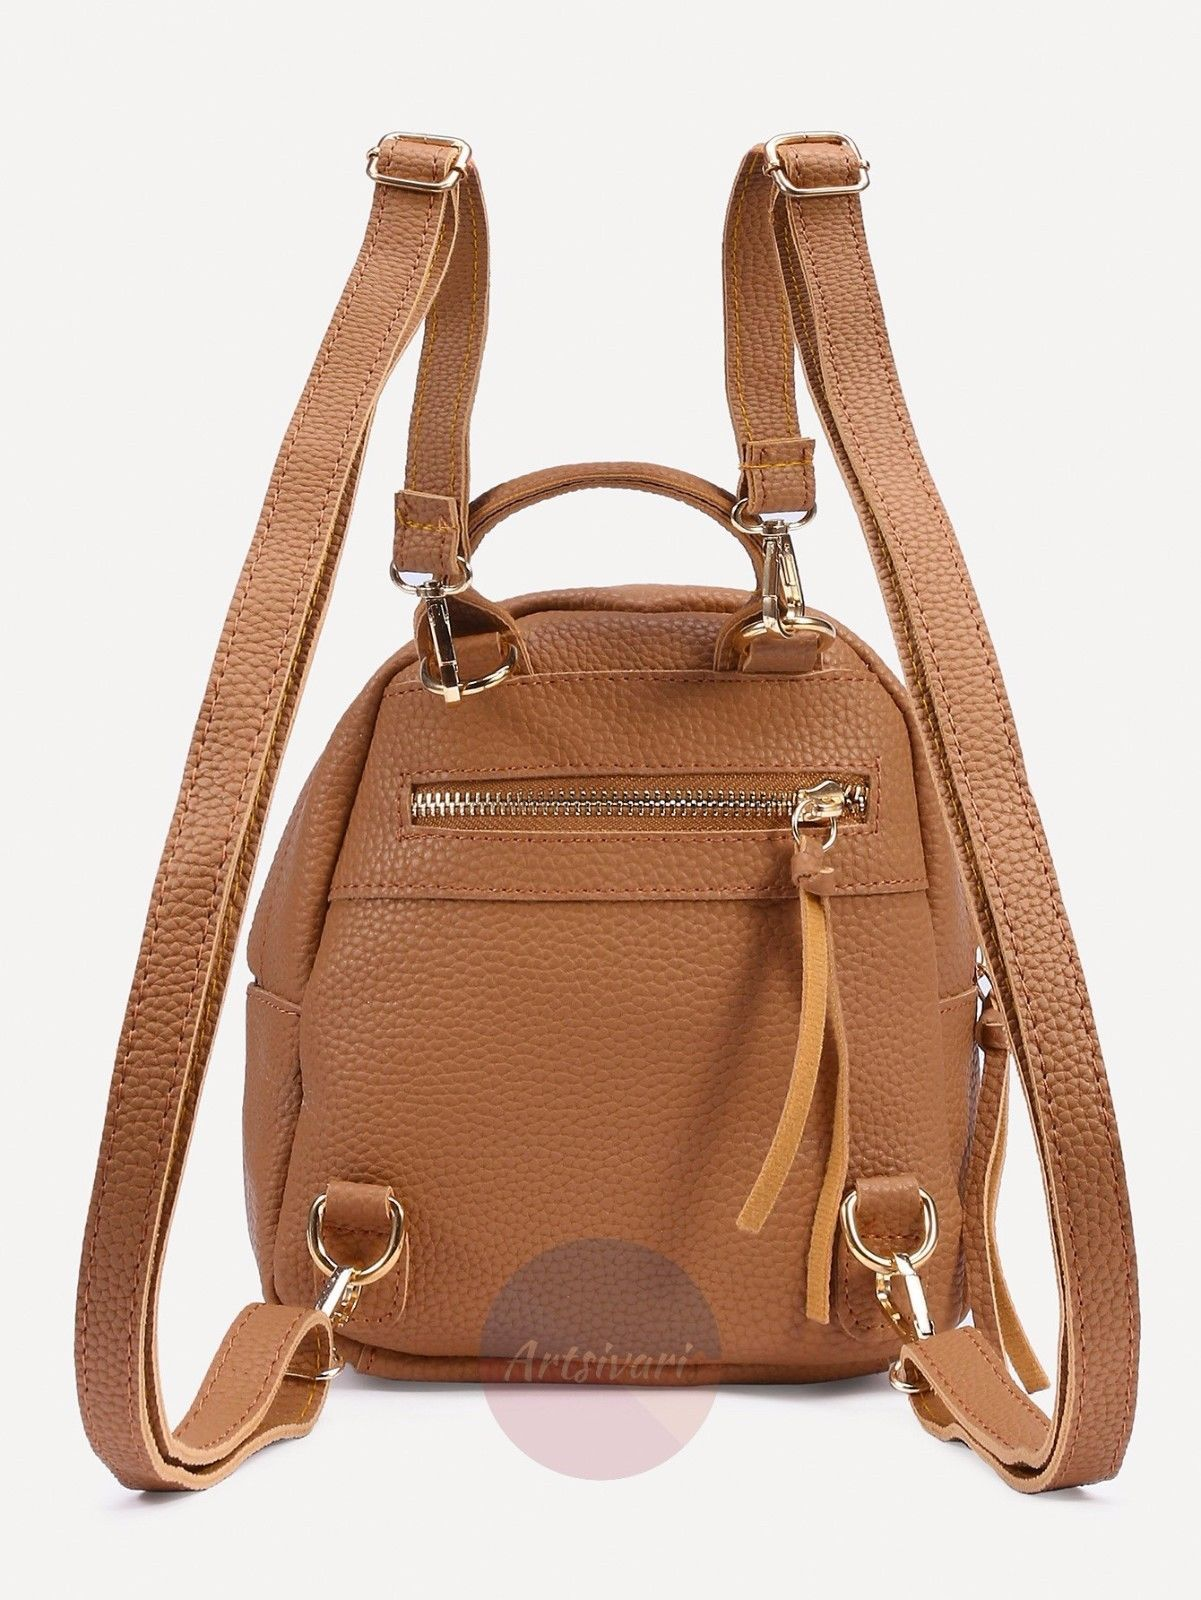 762f8cb05a65 Stylish PEBBLED Backpack Faux Leather Women Handbag Travel Casual Bag  Rucksack